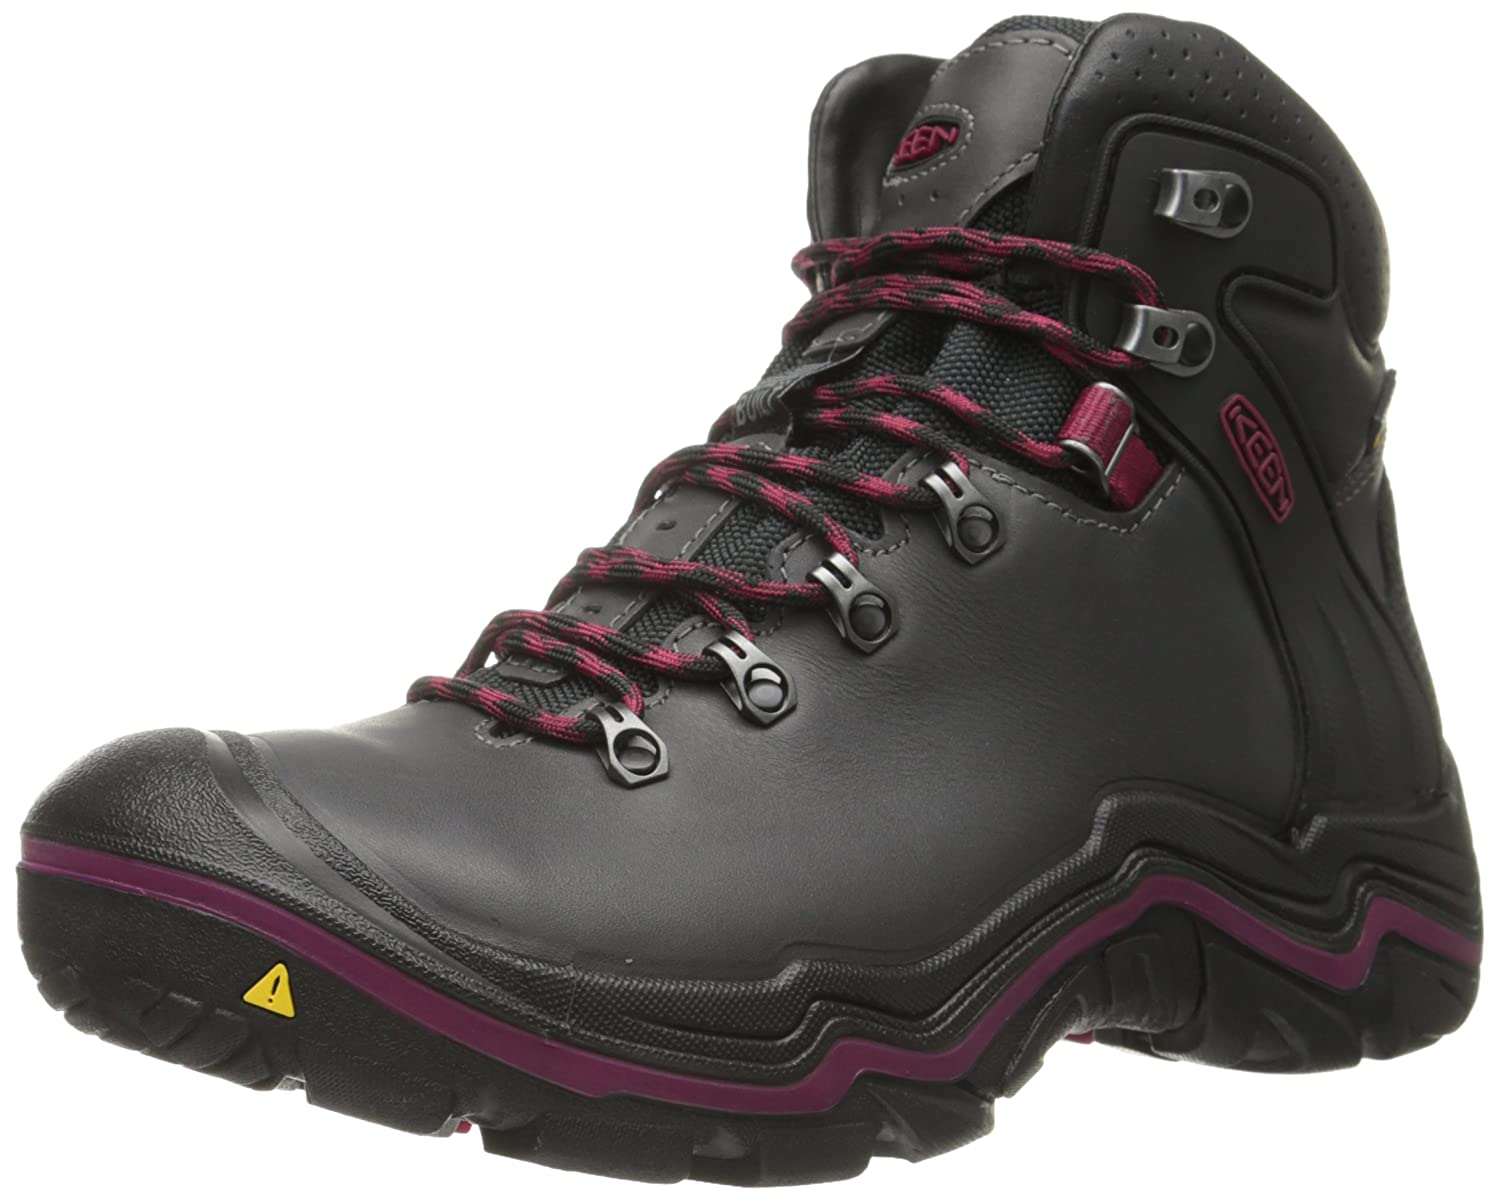 KEEN Women's Liberty Ridge Boot B00RLUKVQA 8.5 B(M) US|Gargoyle/Beet Red